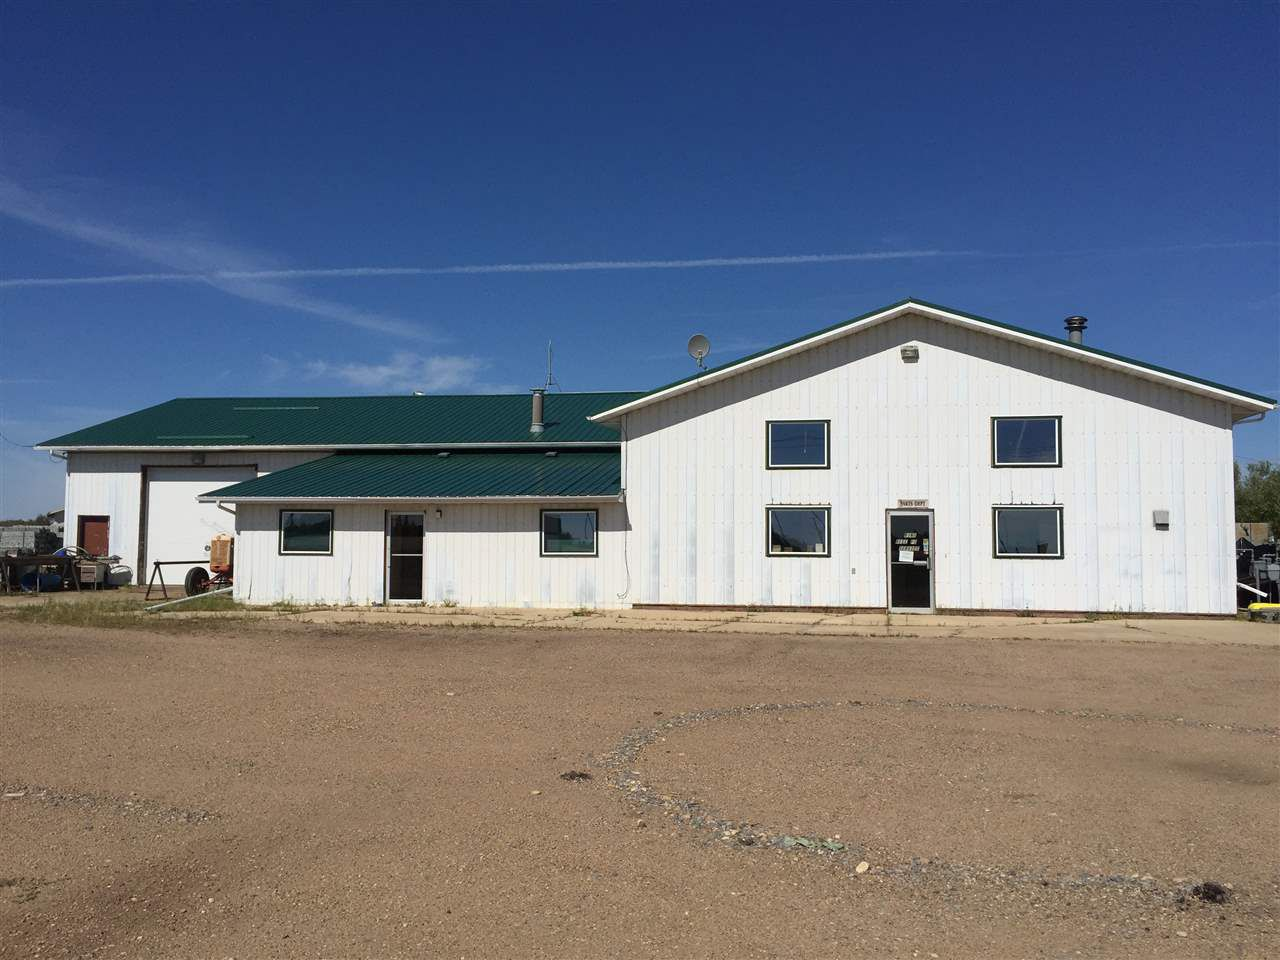 Main Photo: 60002 Range Road 252: Rural Westlock County Industrial for sale : MLS®# E4159031